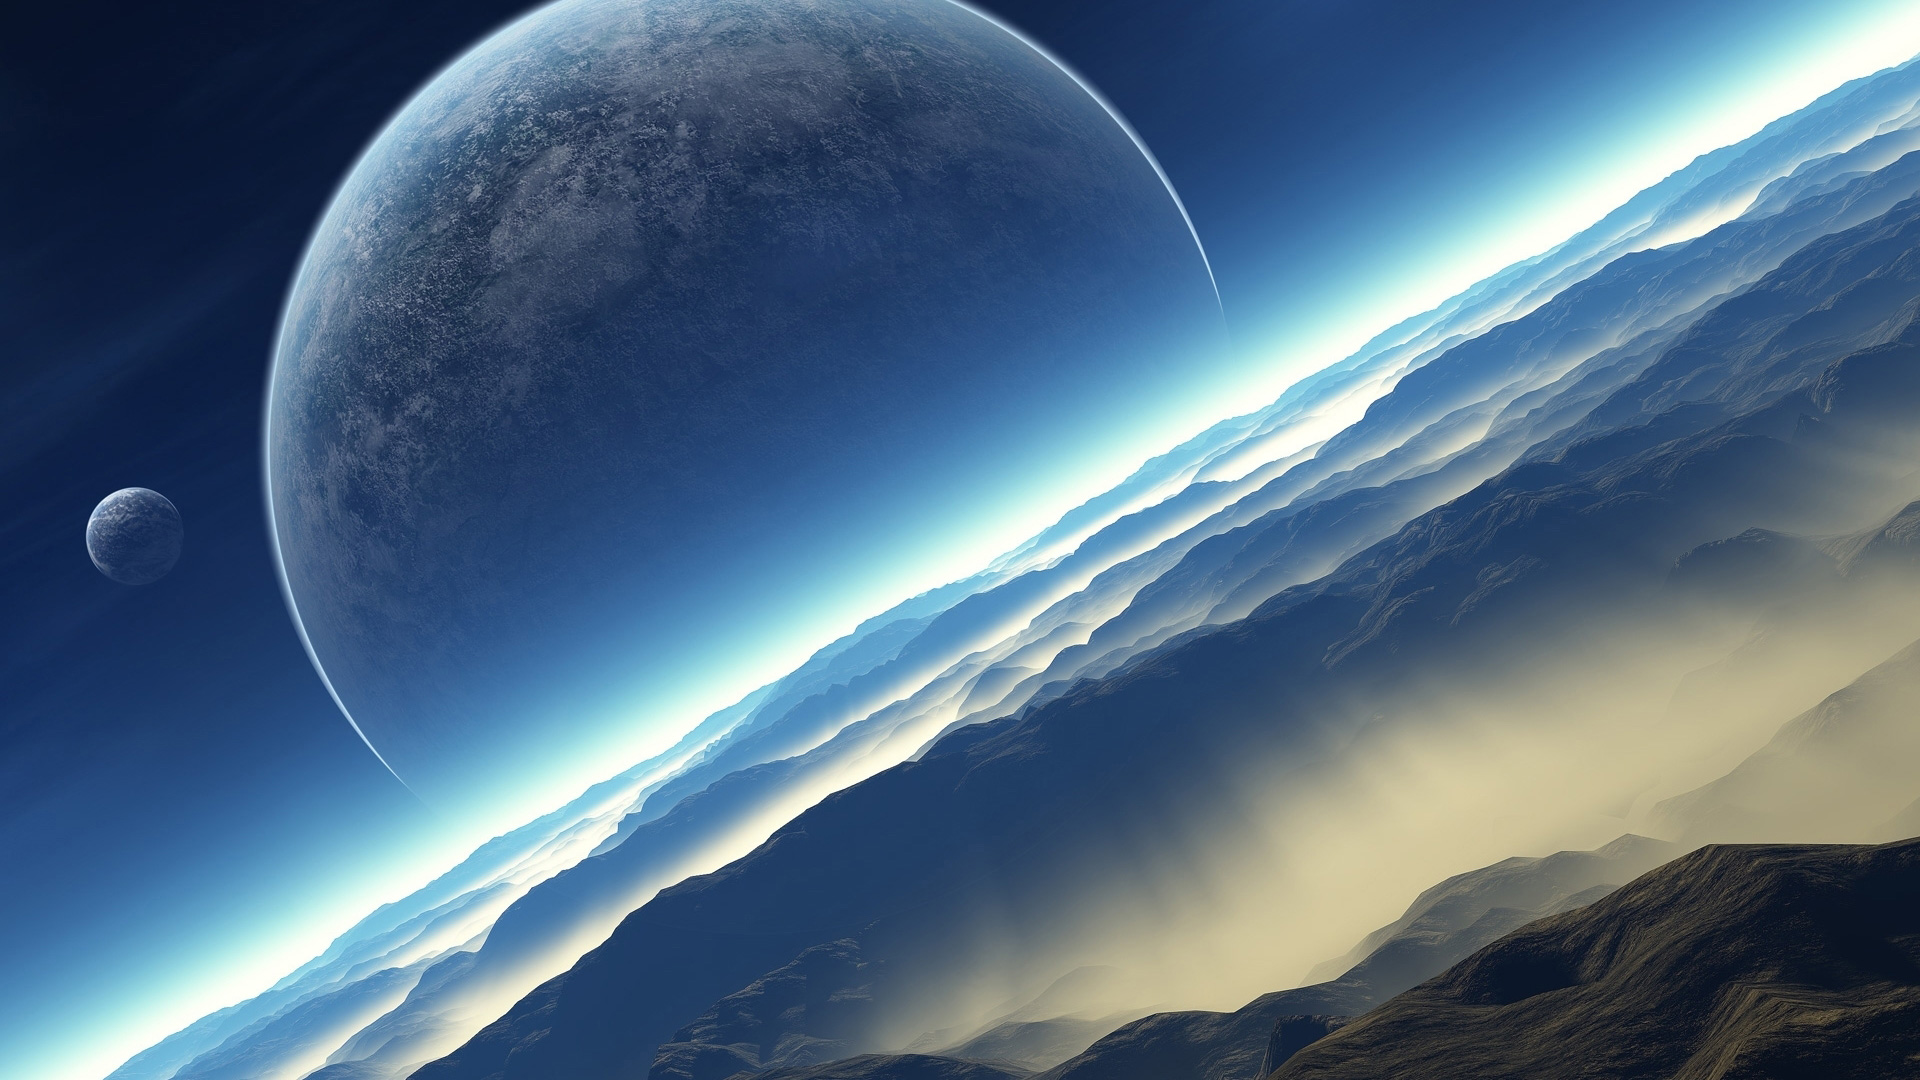 Space Full HD Wallpapers download 1080p desktop backgrounds 1920x1080